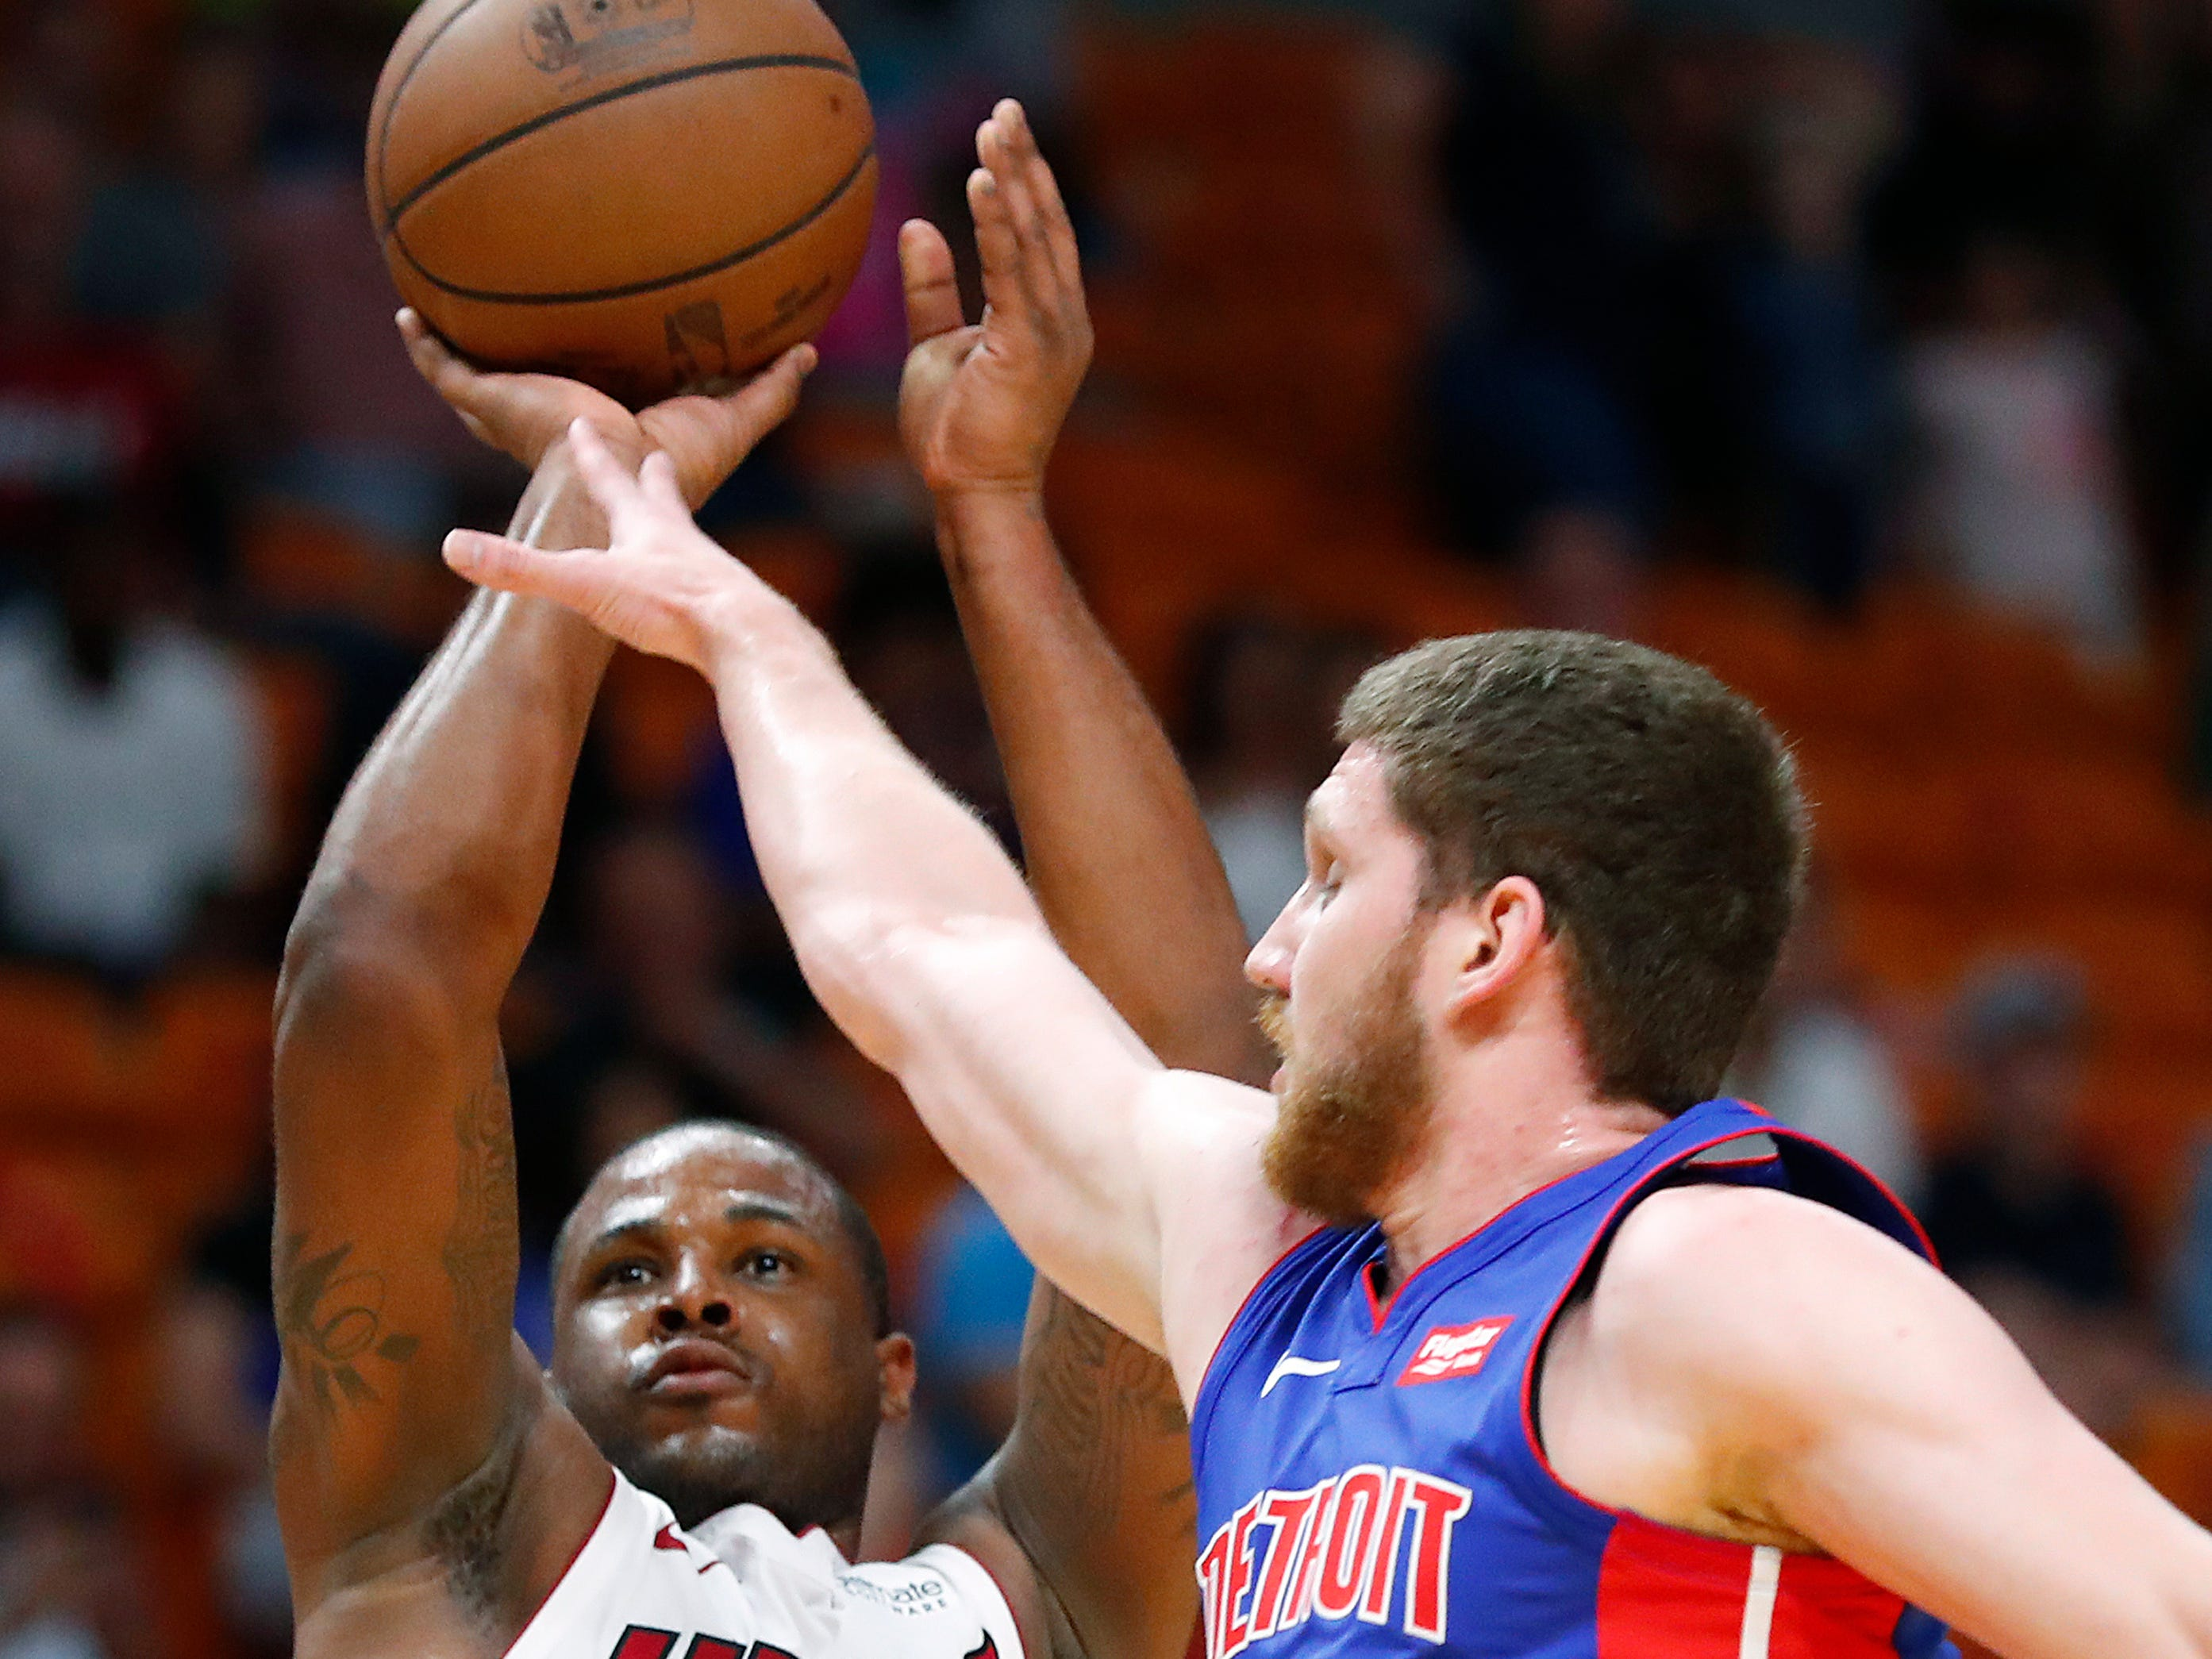 Miami Heat guard Dion Waiters (11) shoots against Detroit Pistons guard Sviatoslav Mykhailiuk (19) during the second half.